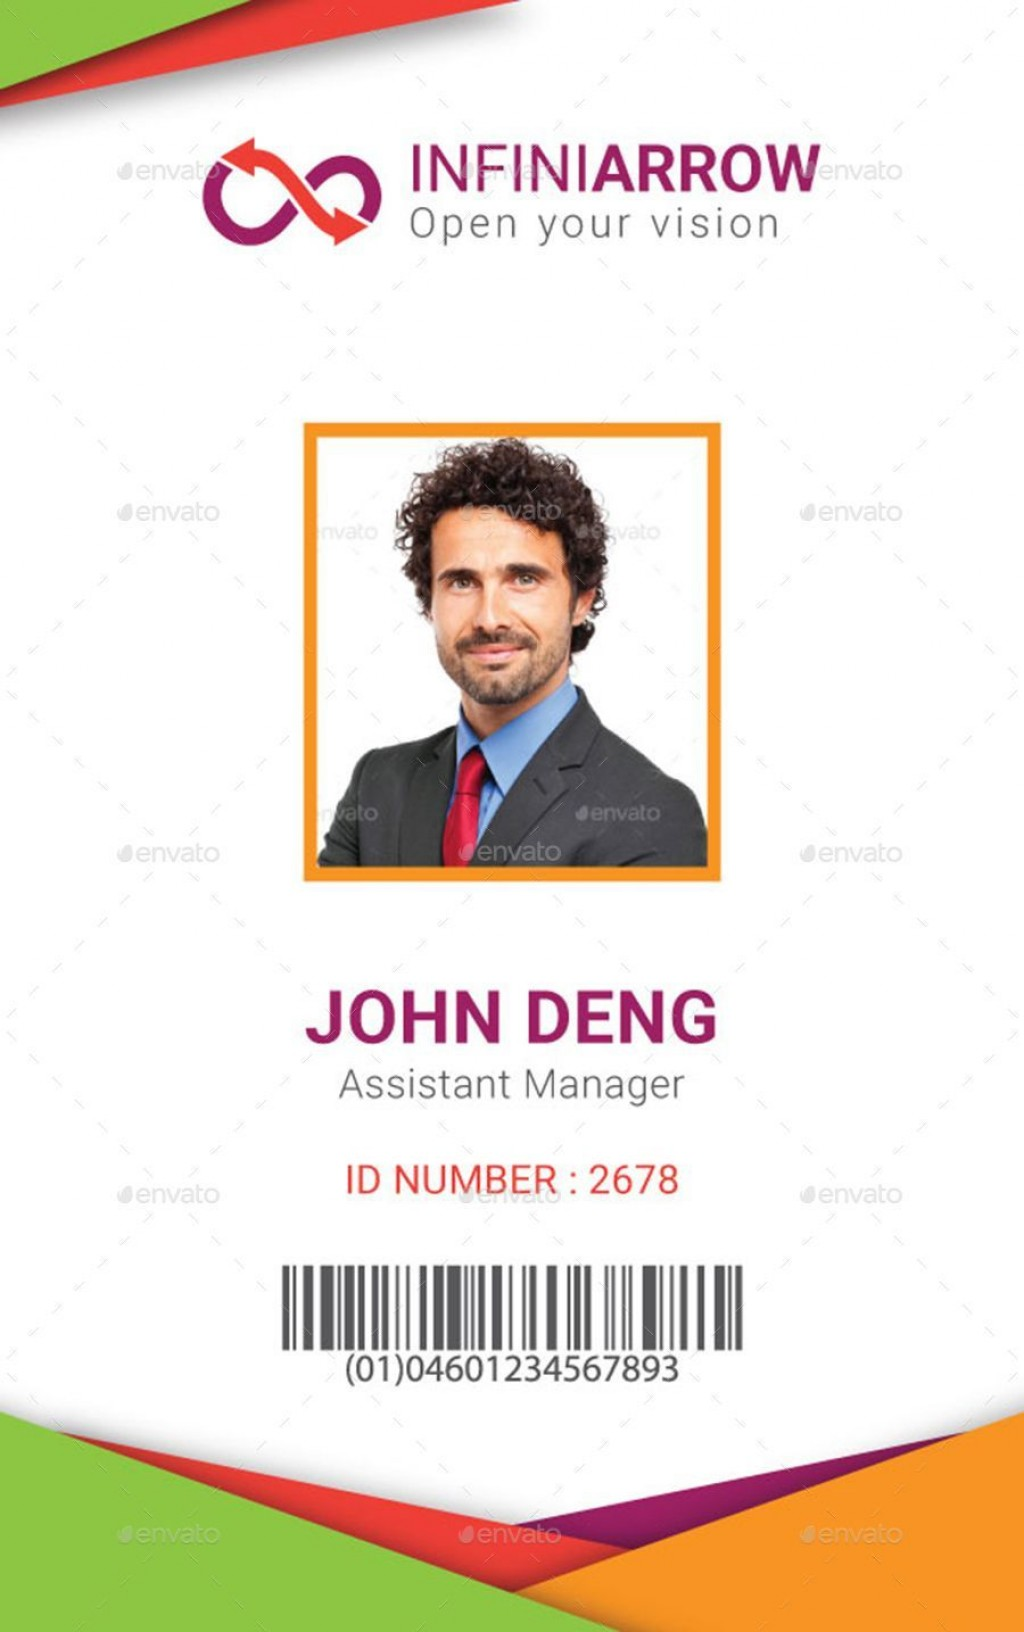 002 Stupendou Id Card Template Free Download Example  Design Photoshop Identity Student WordLarge